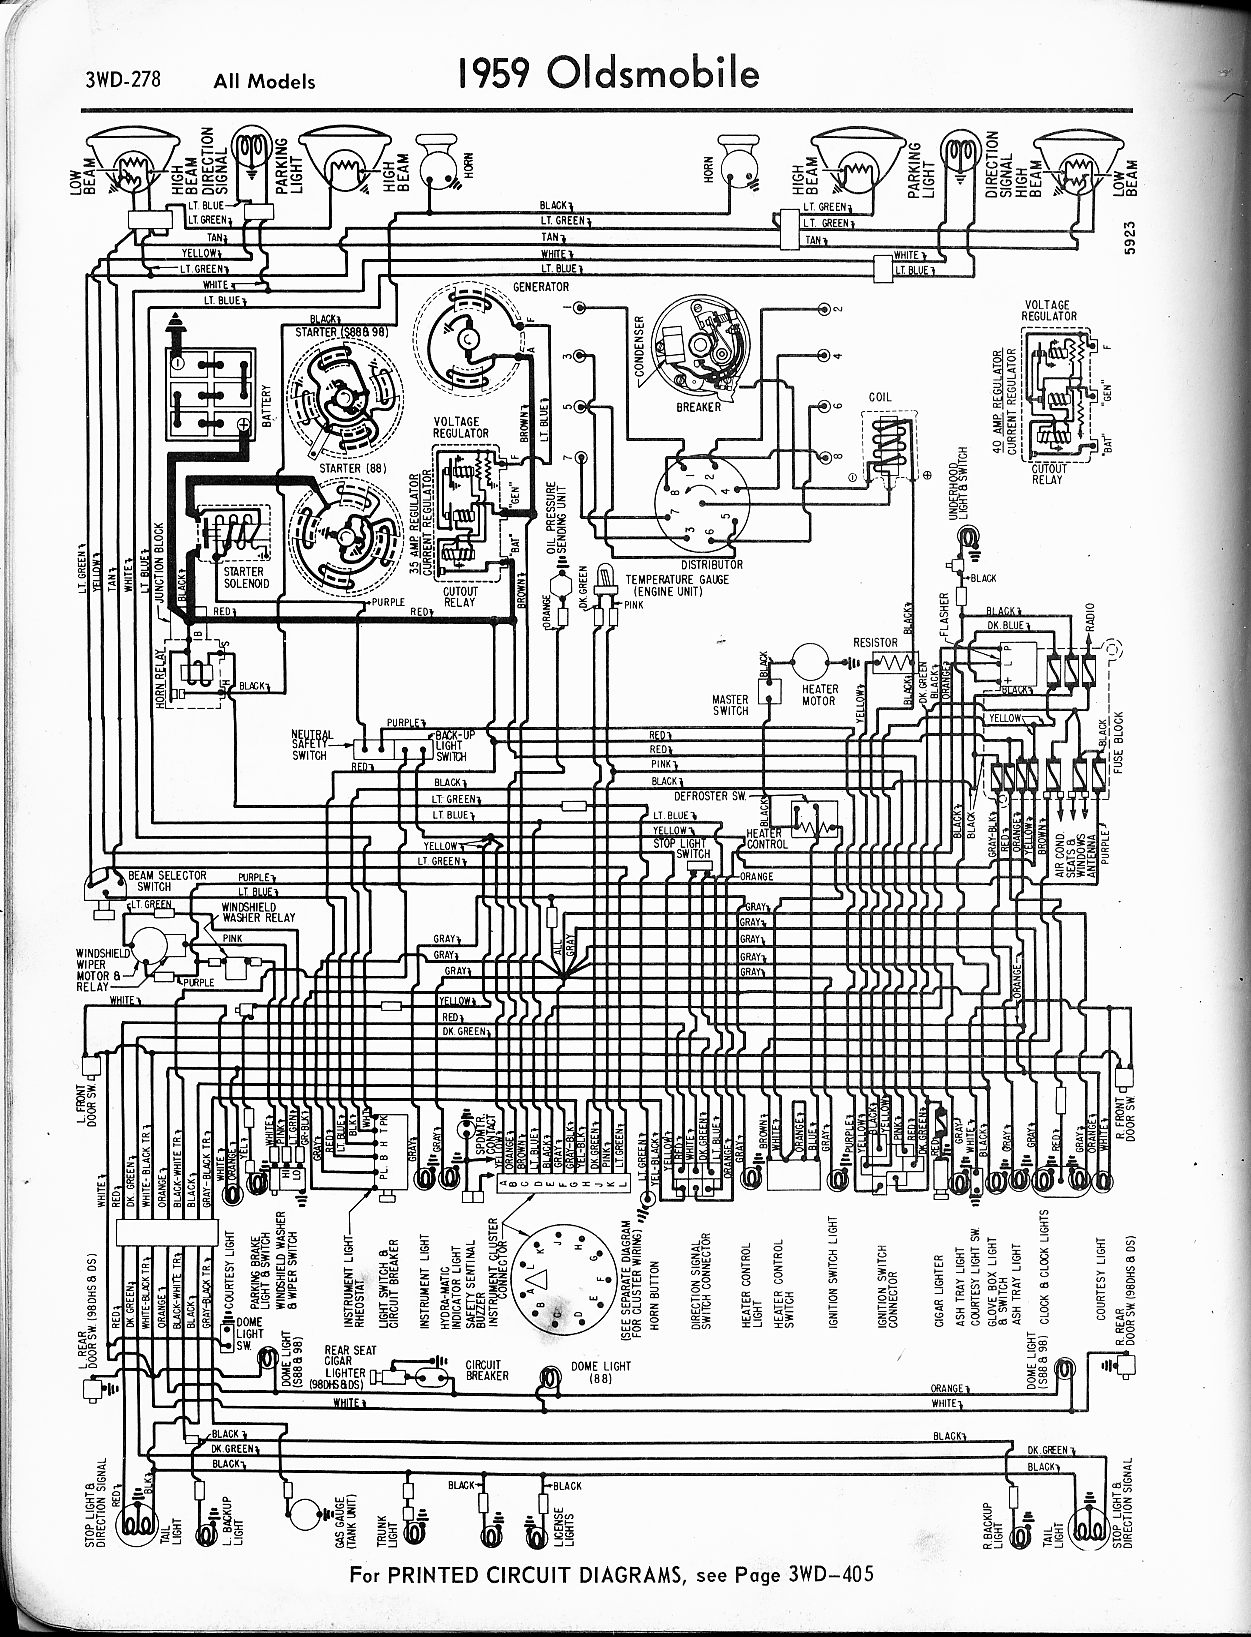 85 Delta 88 Fuse Box Wiring Diagram Schematics 1990 Corvette Oldsmobile Diagrams The Old Car Manual Project Camaro